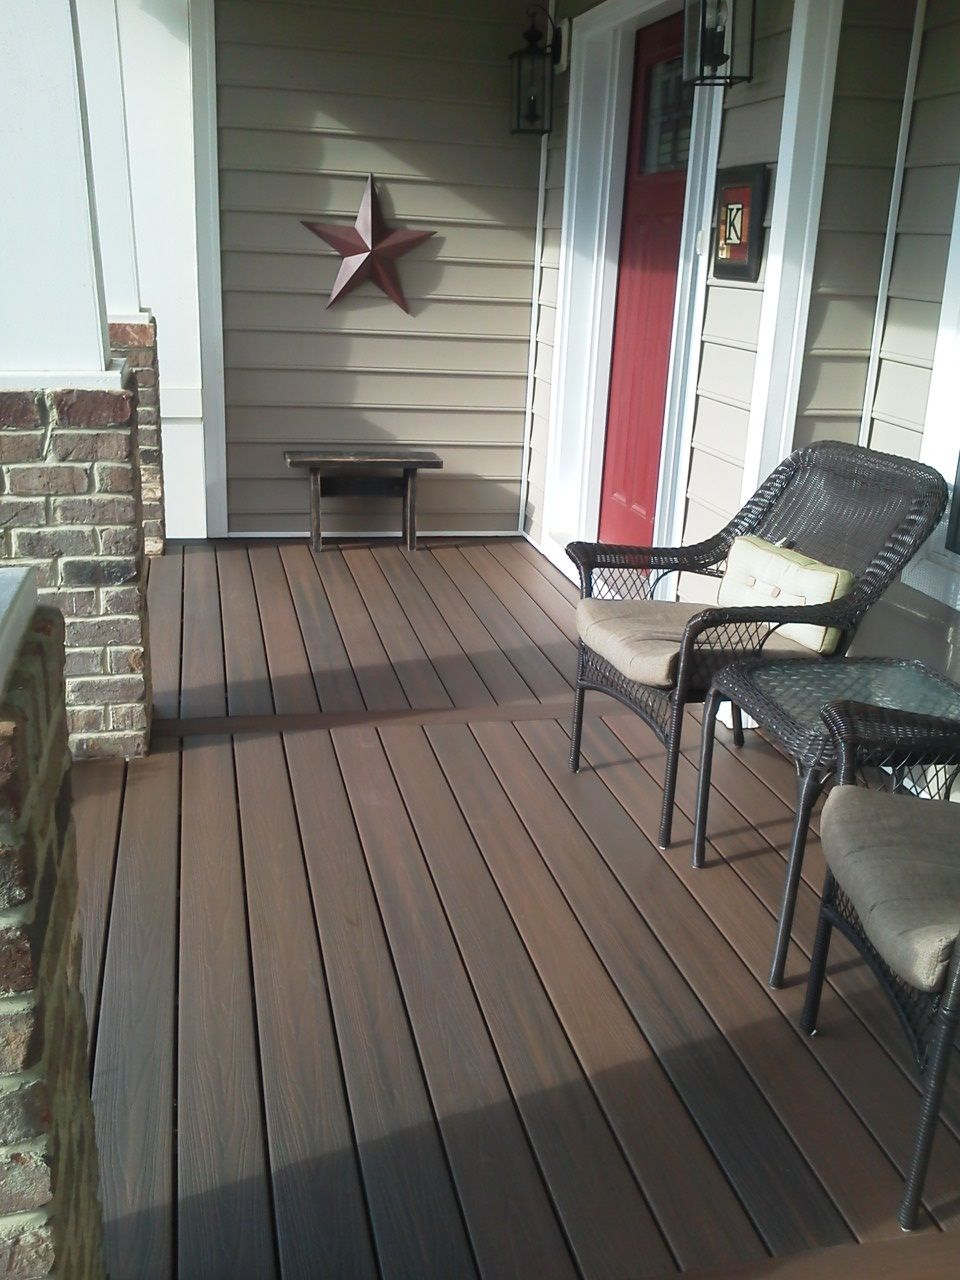 Exterior, : Front Porch Flooring Ideas With Dark Brown Wooden Floor  Integrated With White And Grey Brick Pillars Also Chairs And Table Plus  Some Wall ...